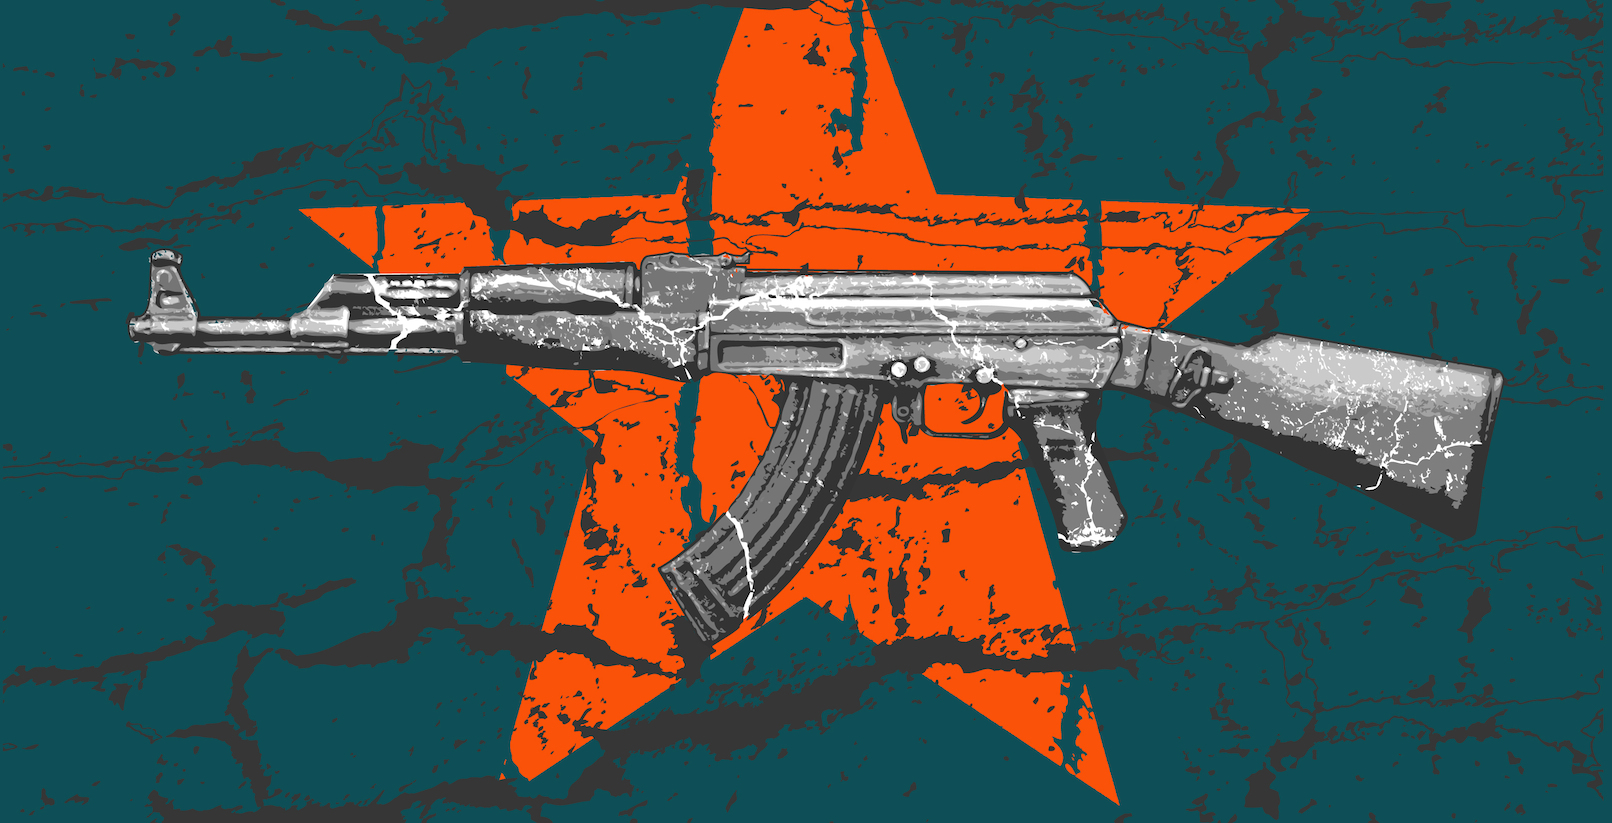 The Artificial Intelligence AK-47 is coming